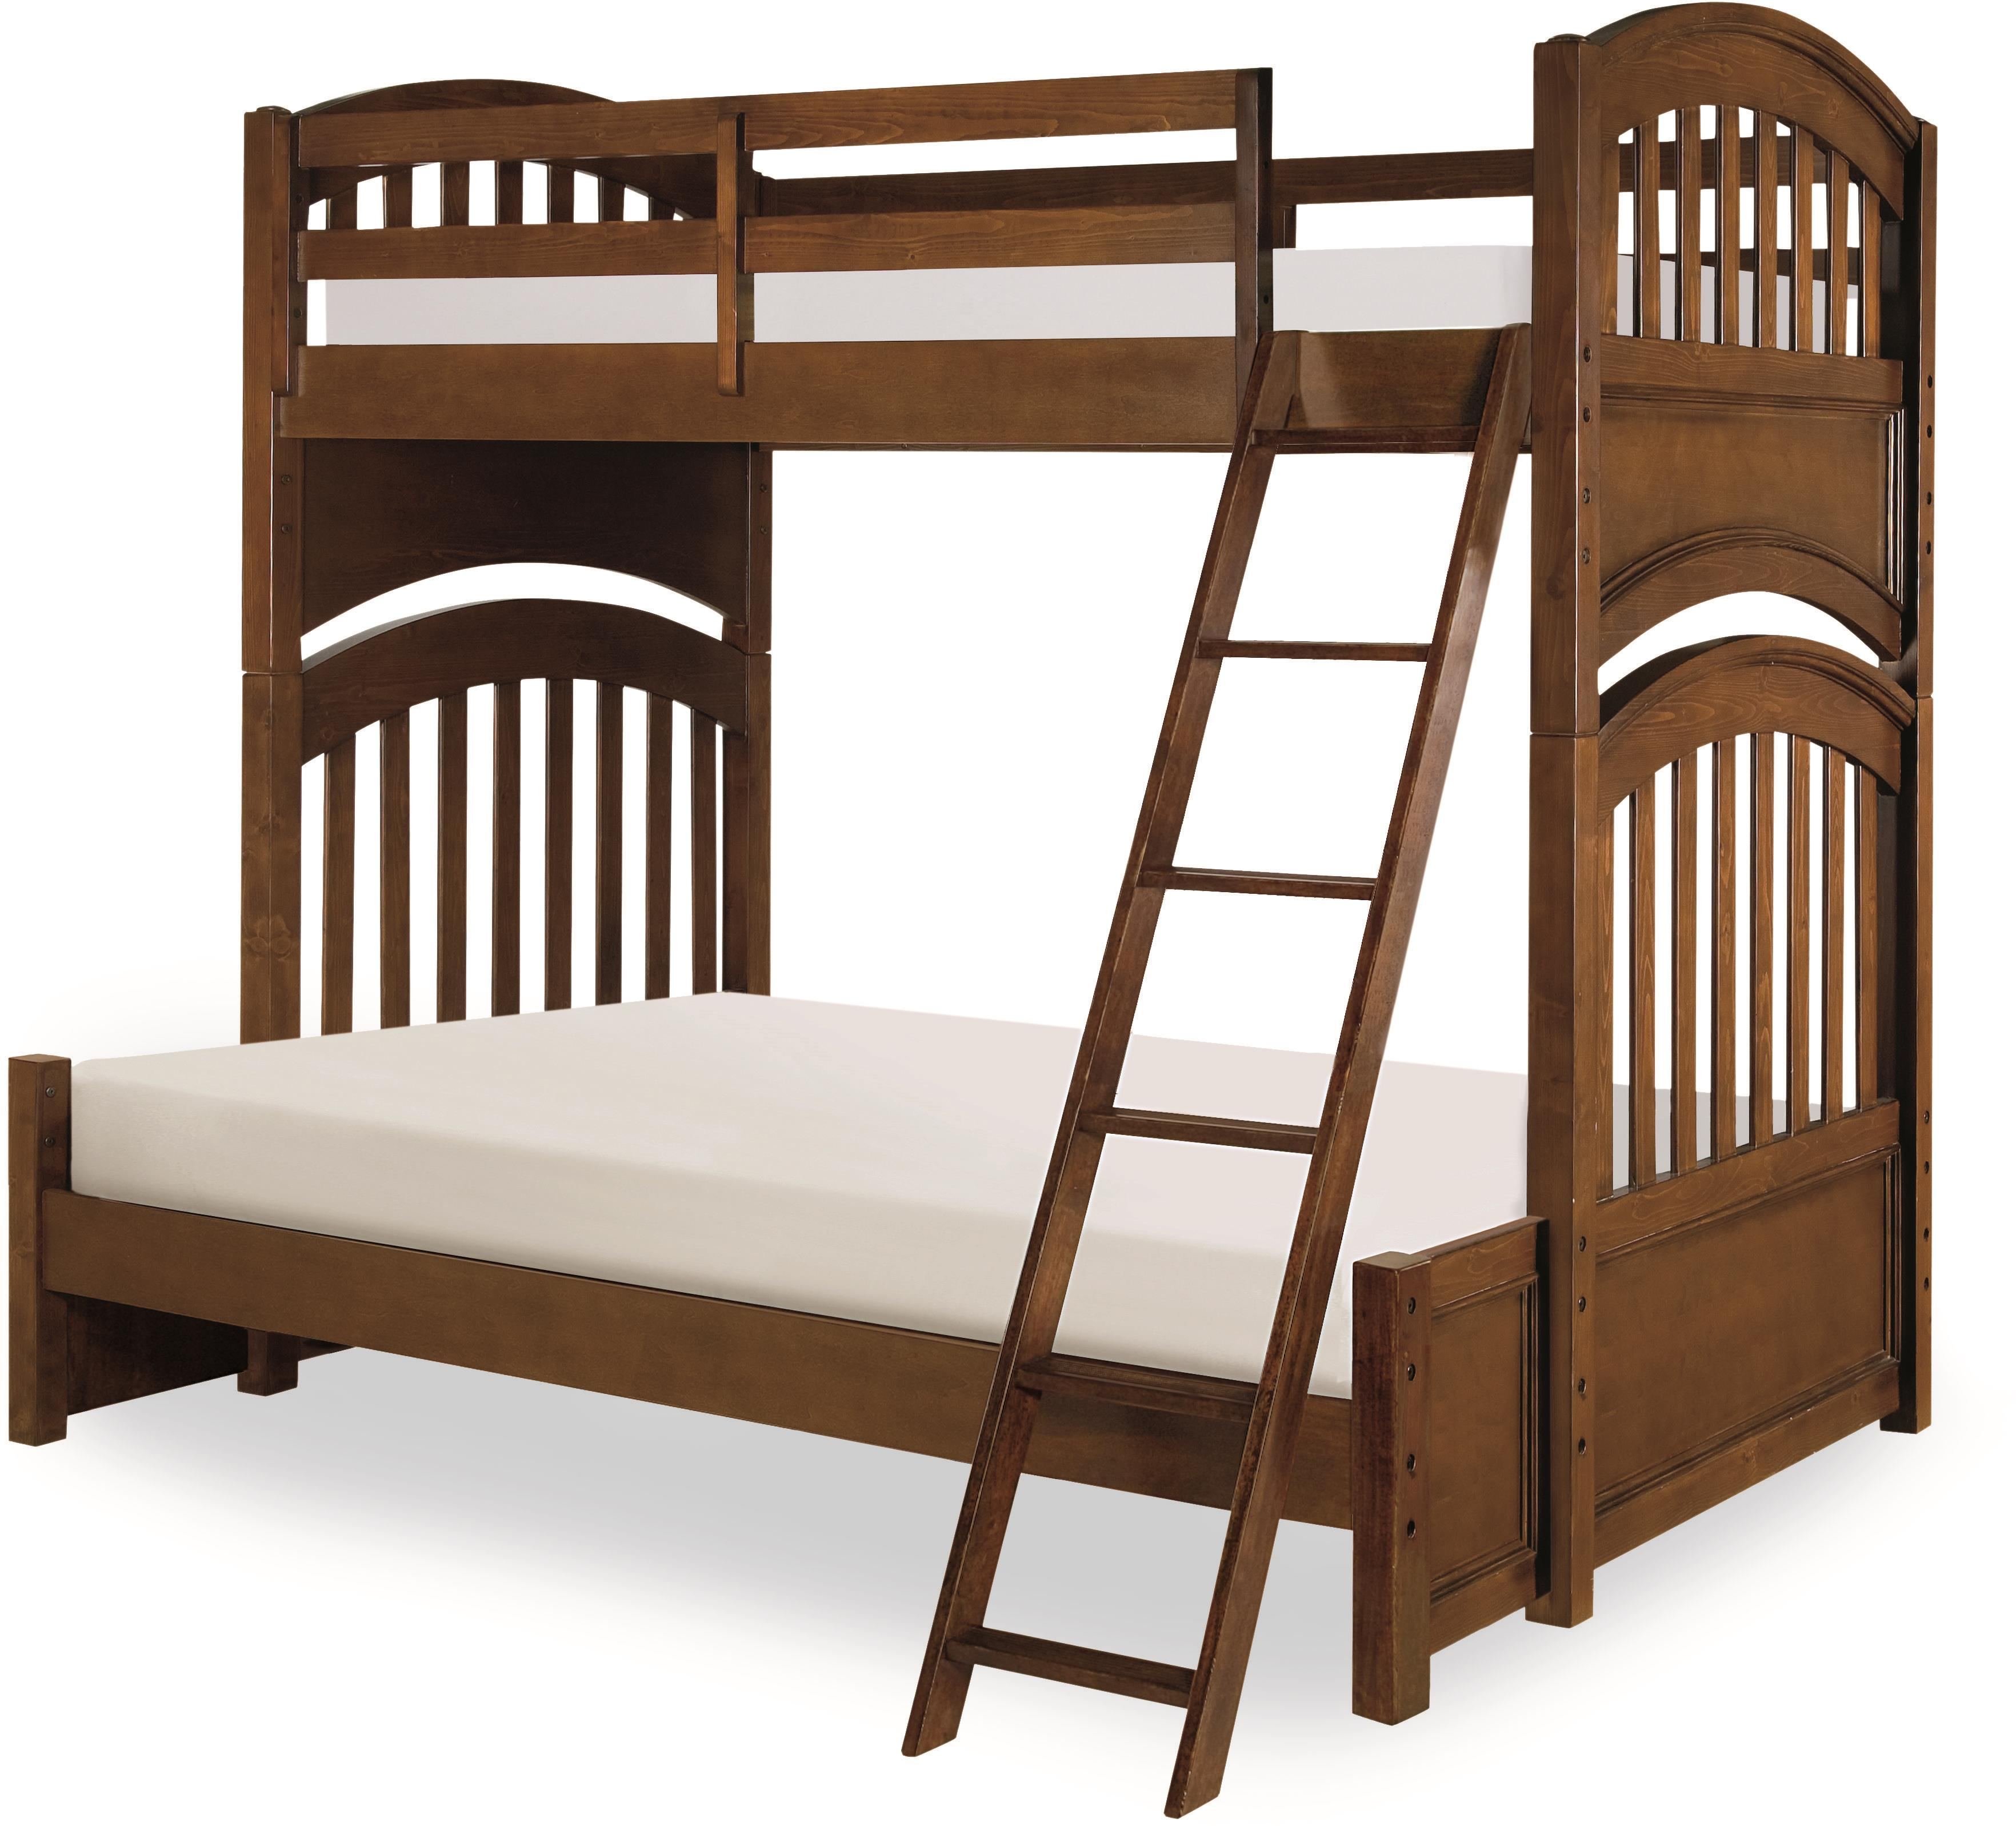 Legacy Classic Kids Academy Twin over Full Bunk Bed - Item Number: 5812-8140K